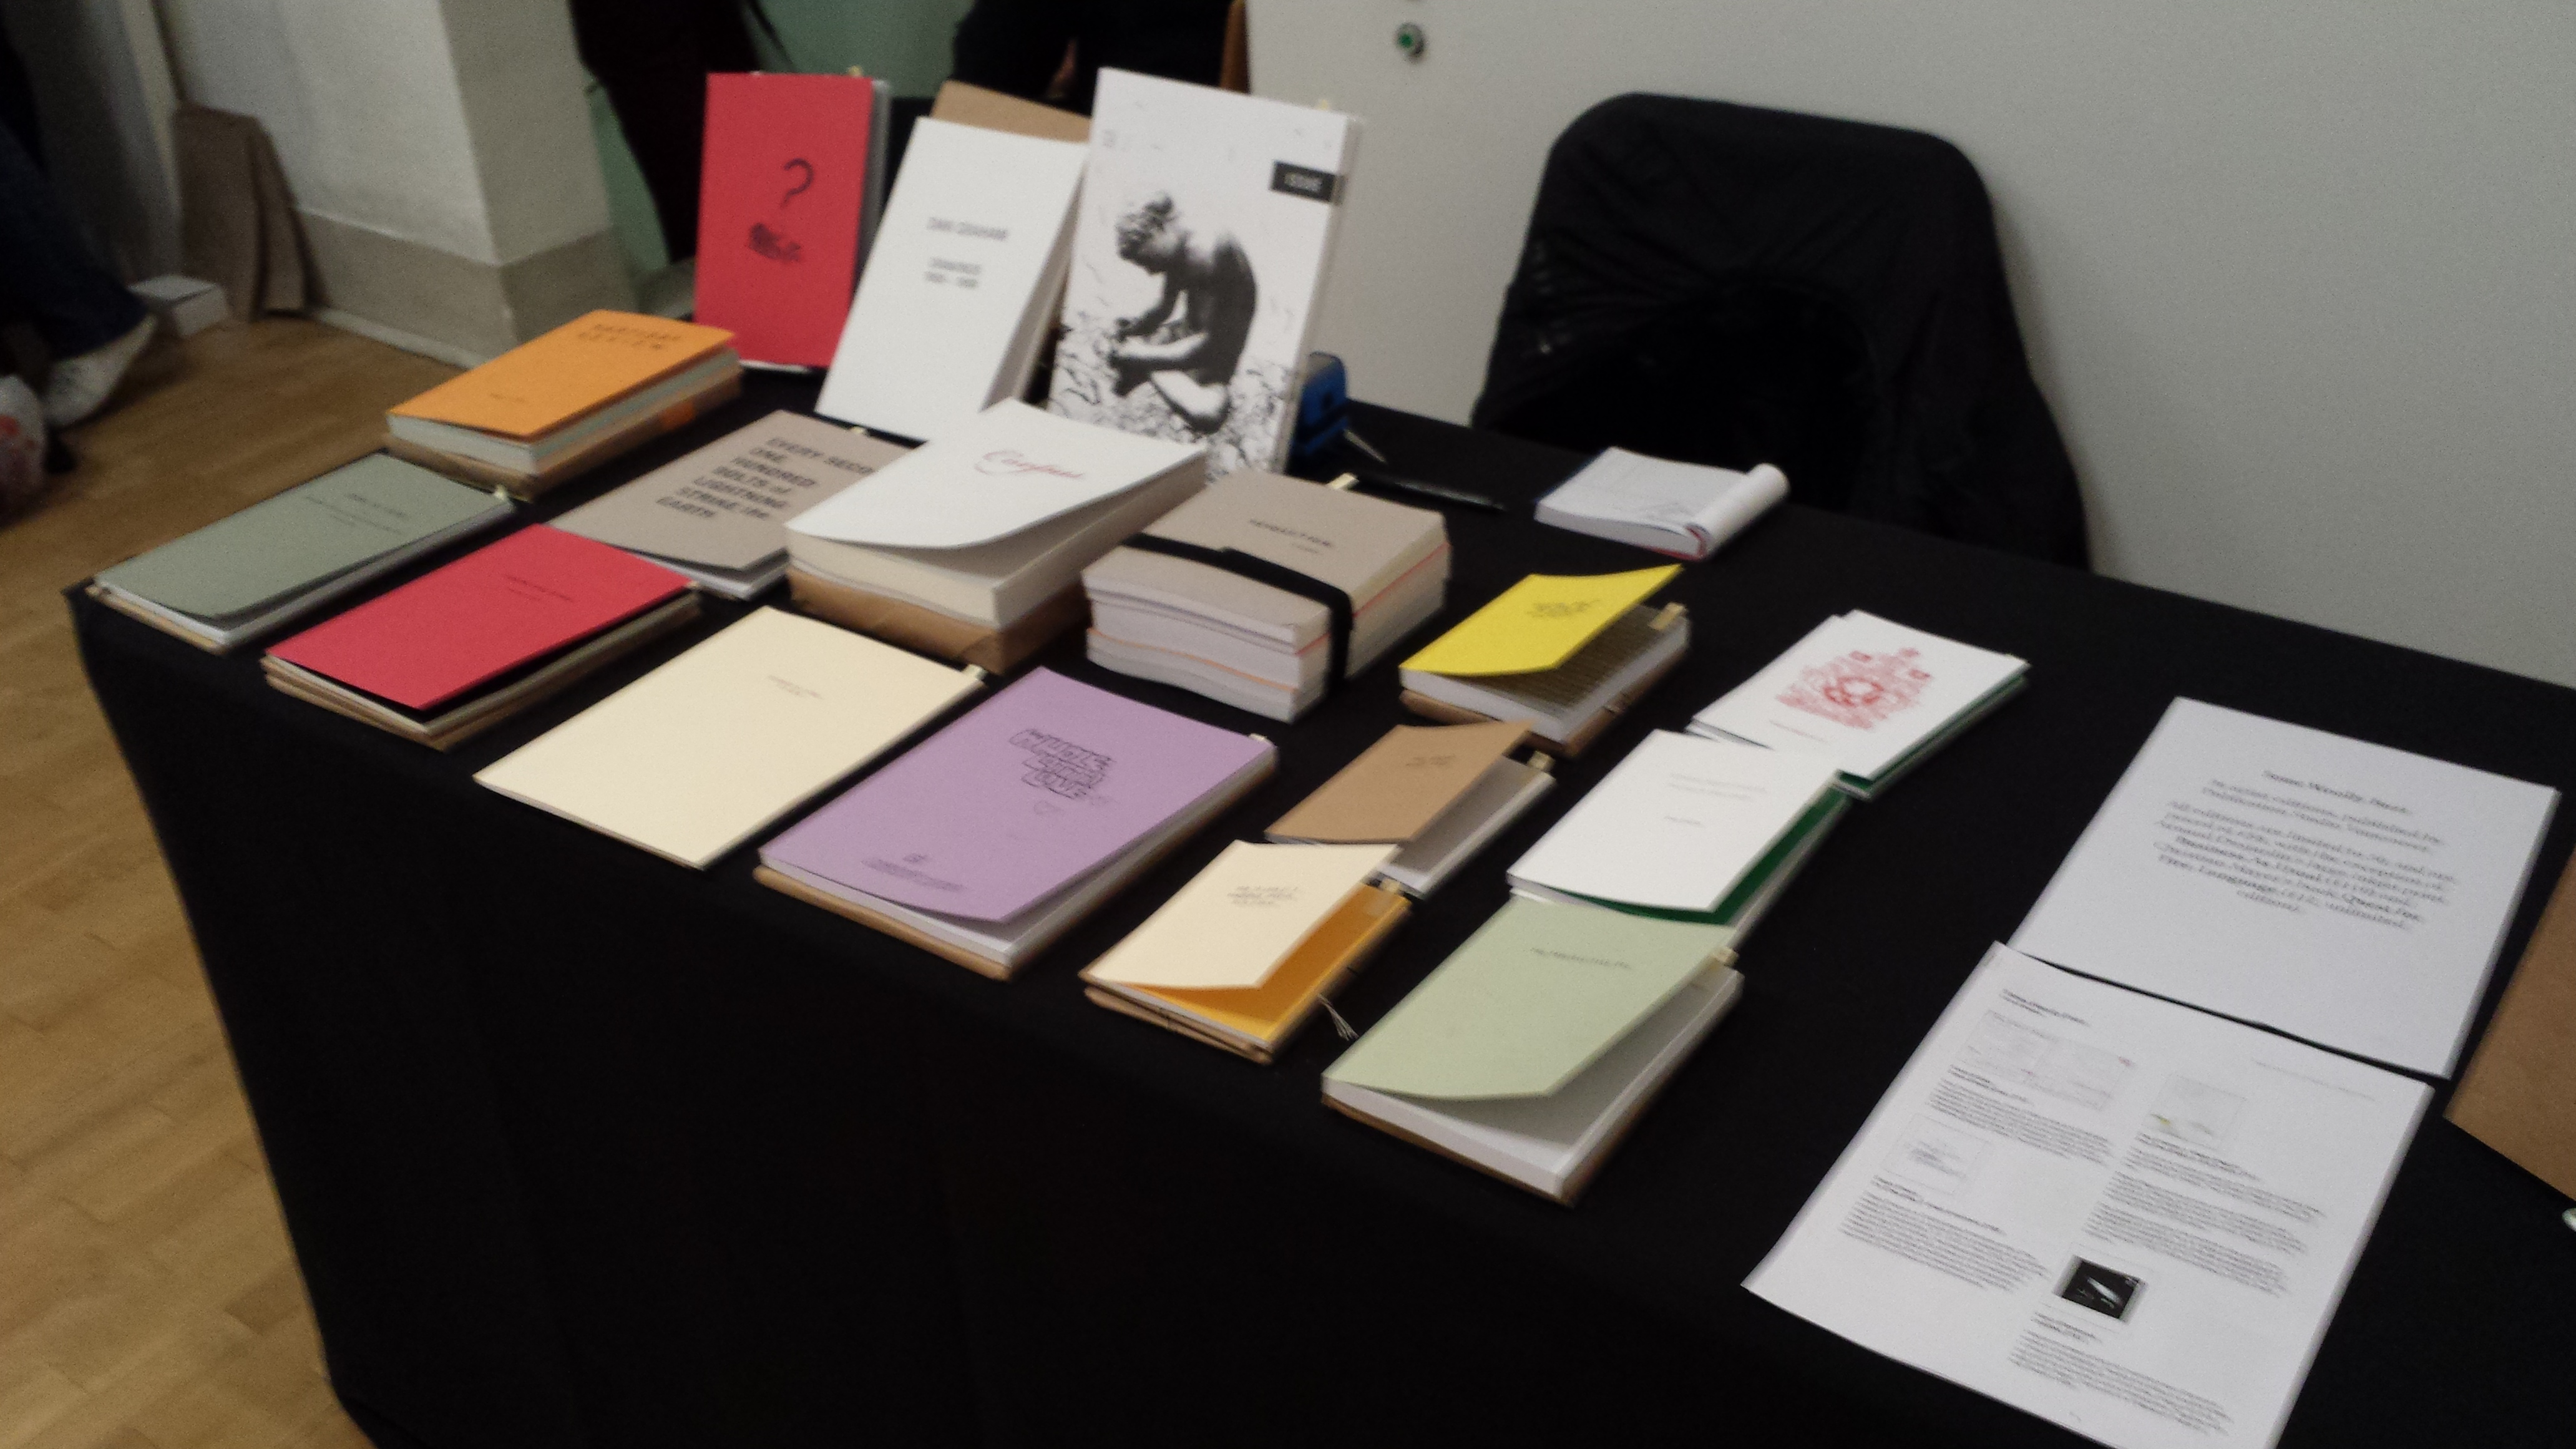 psv table at london art book fair 2014